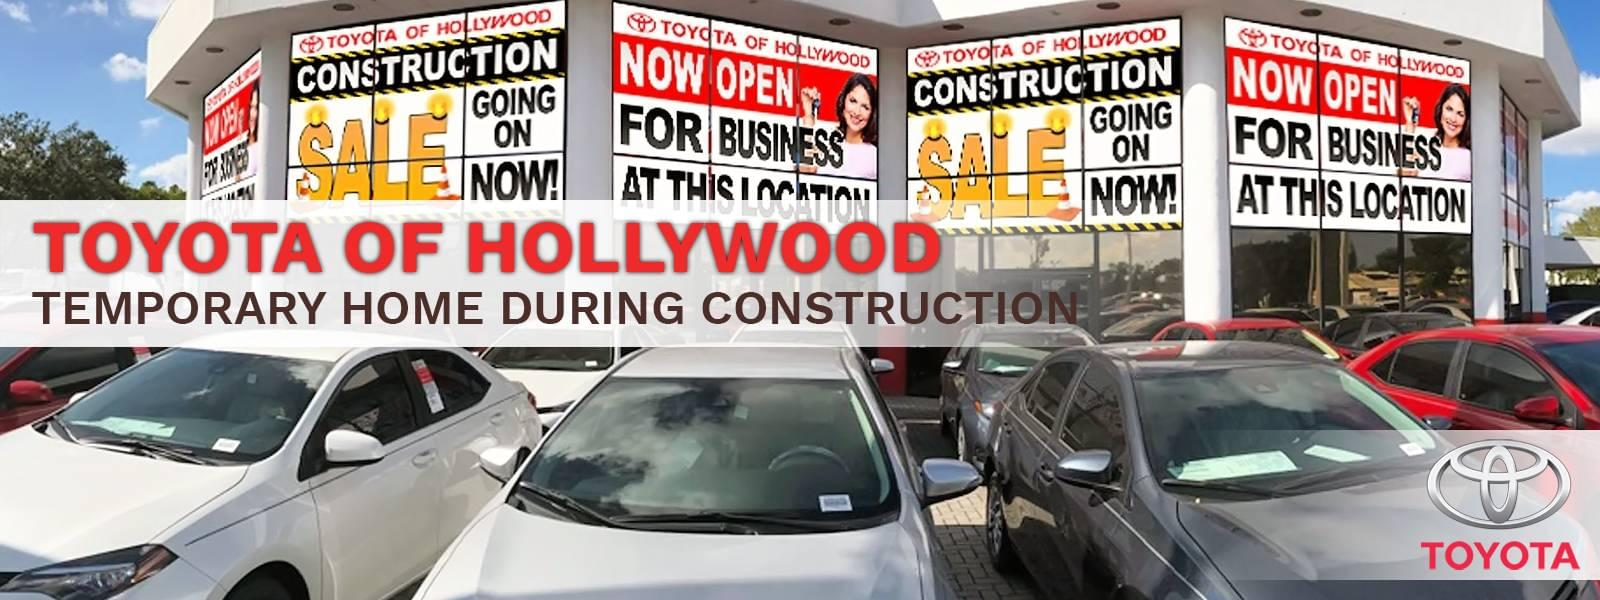 toyota of hollywood location